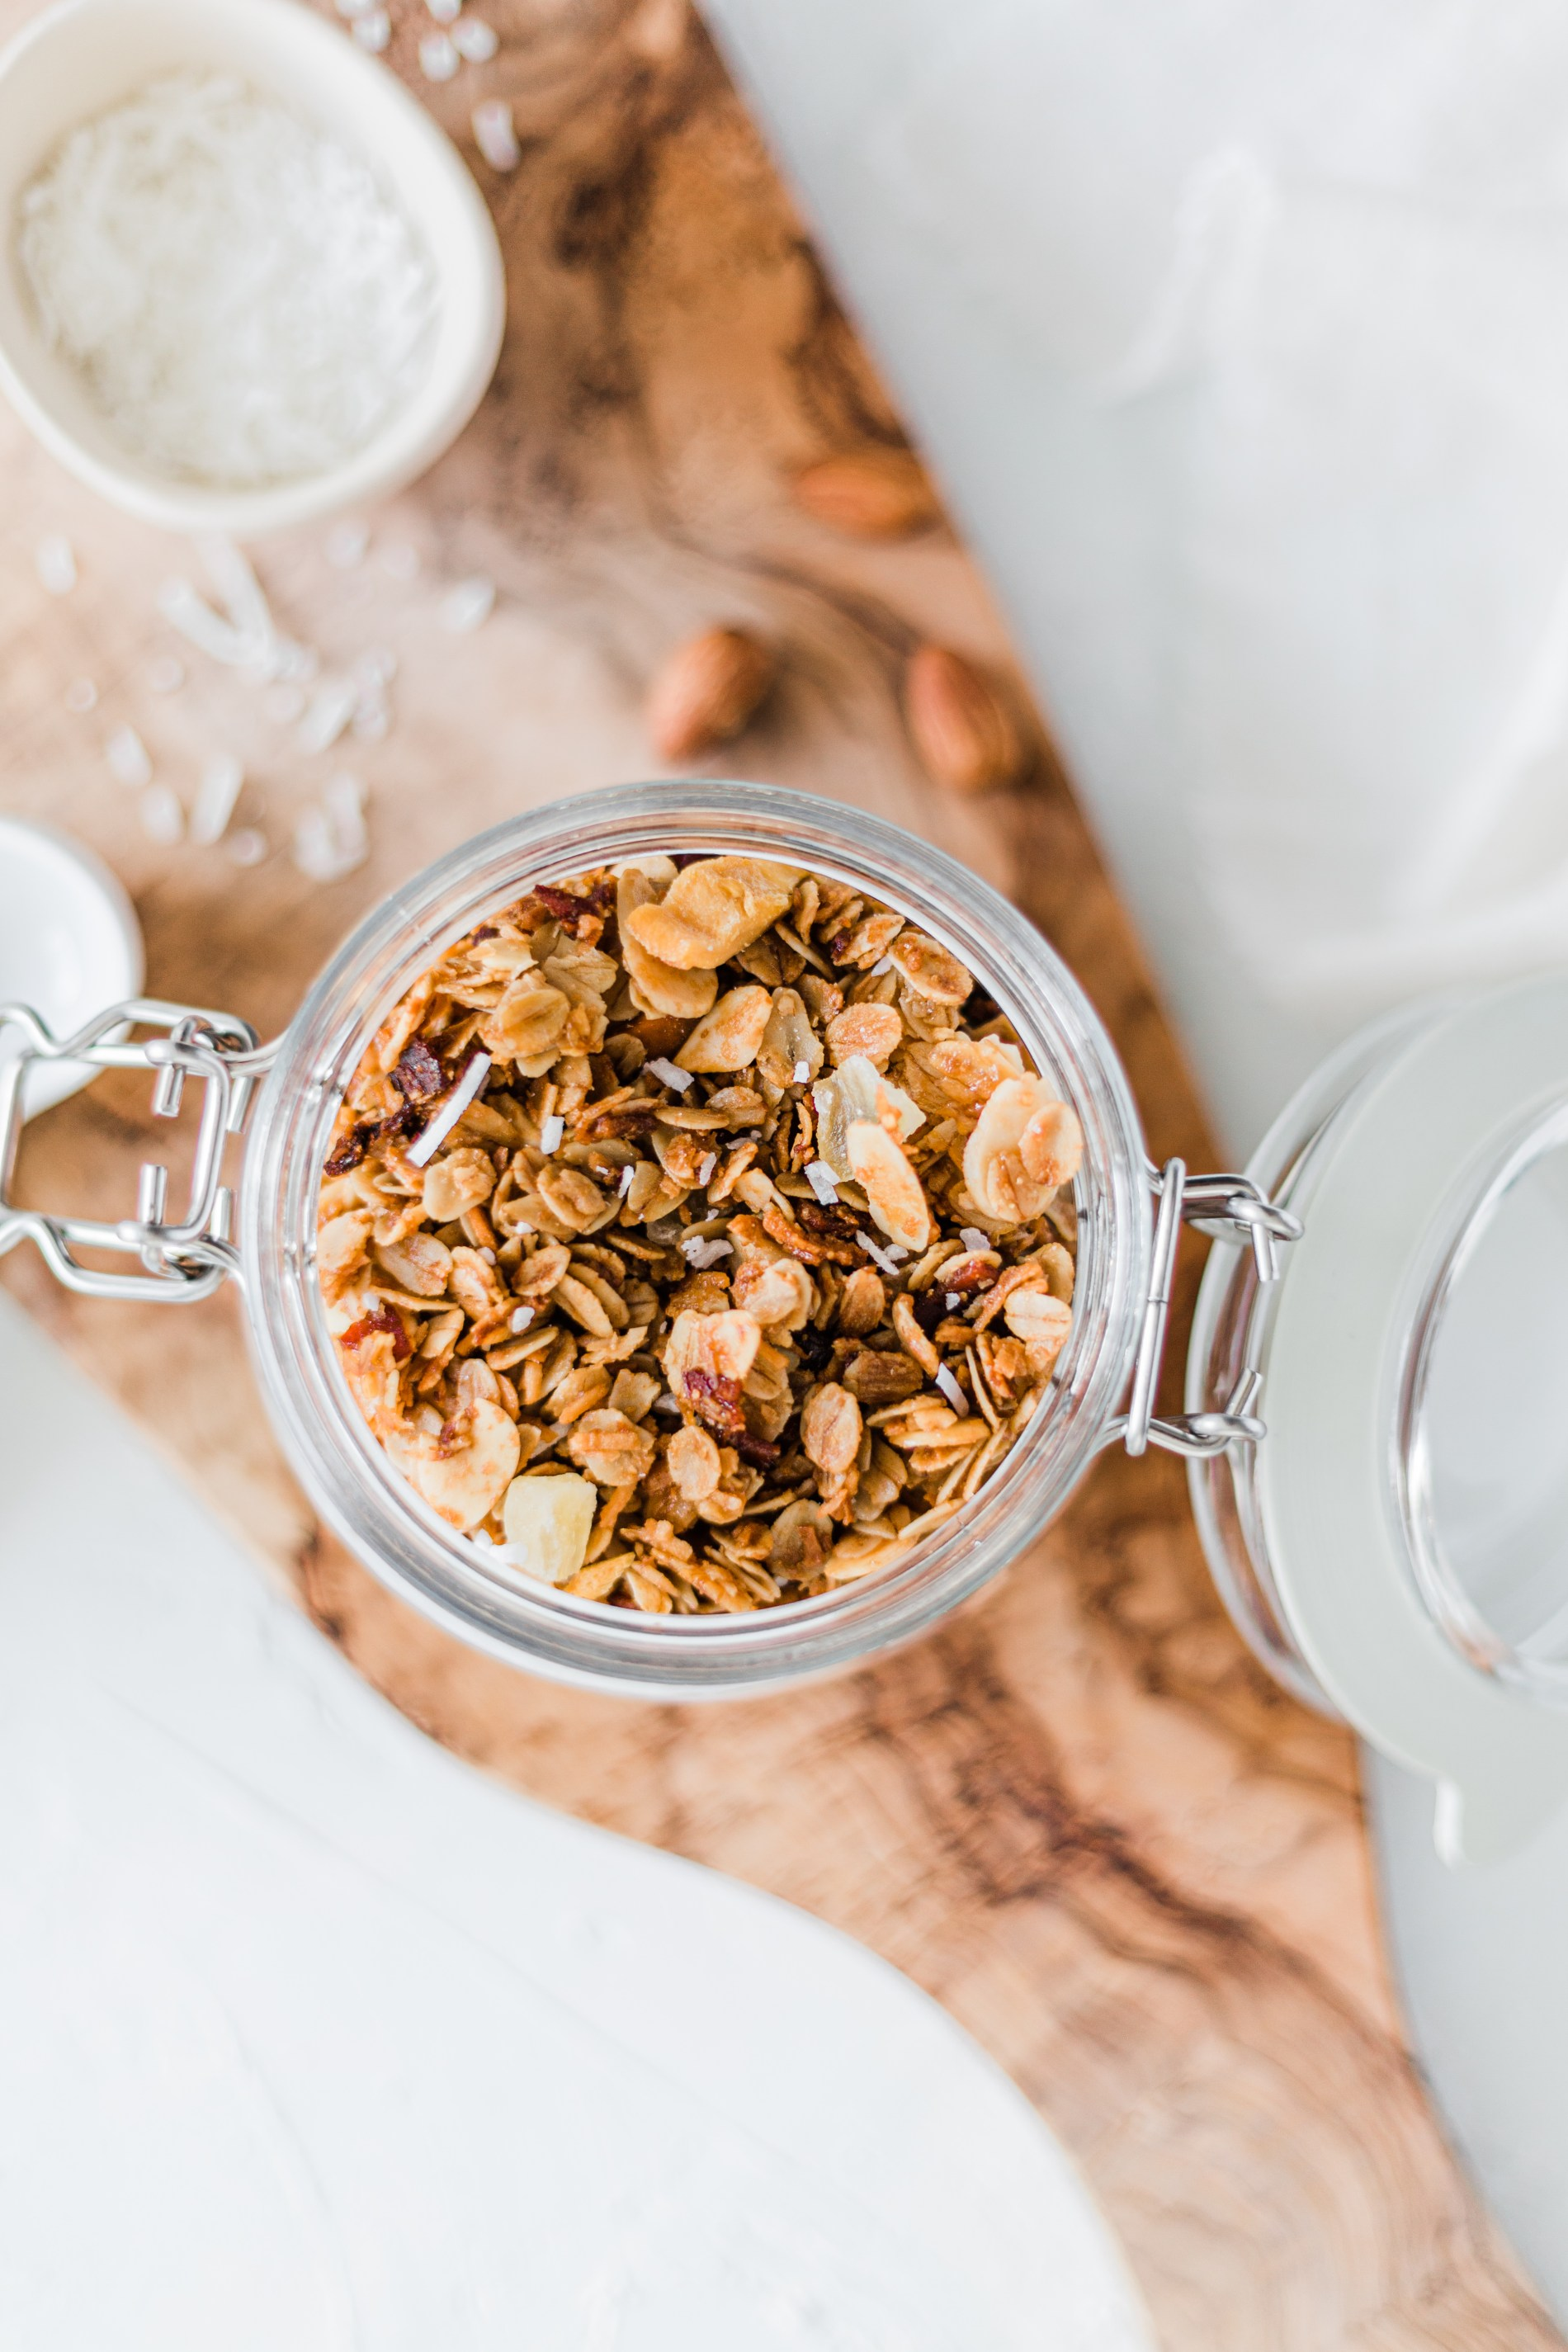 Tropical Granola with Mango, Pineapple & Bacon- Easy homemade granola that's both sweet and a little savoury. #homemadegranola #tropicalgranola #easyrecipe #healthybreakfast